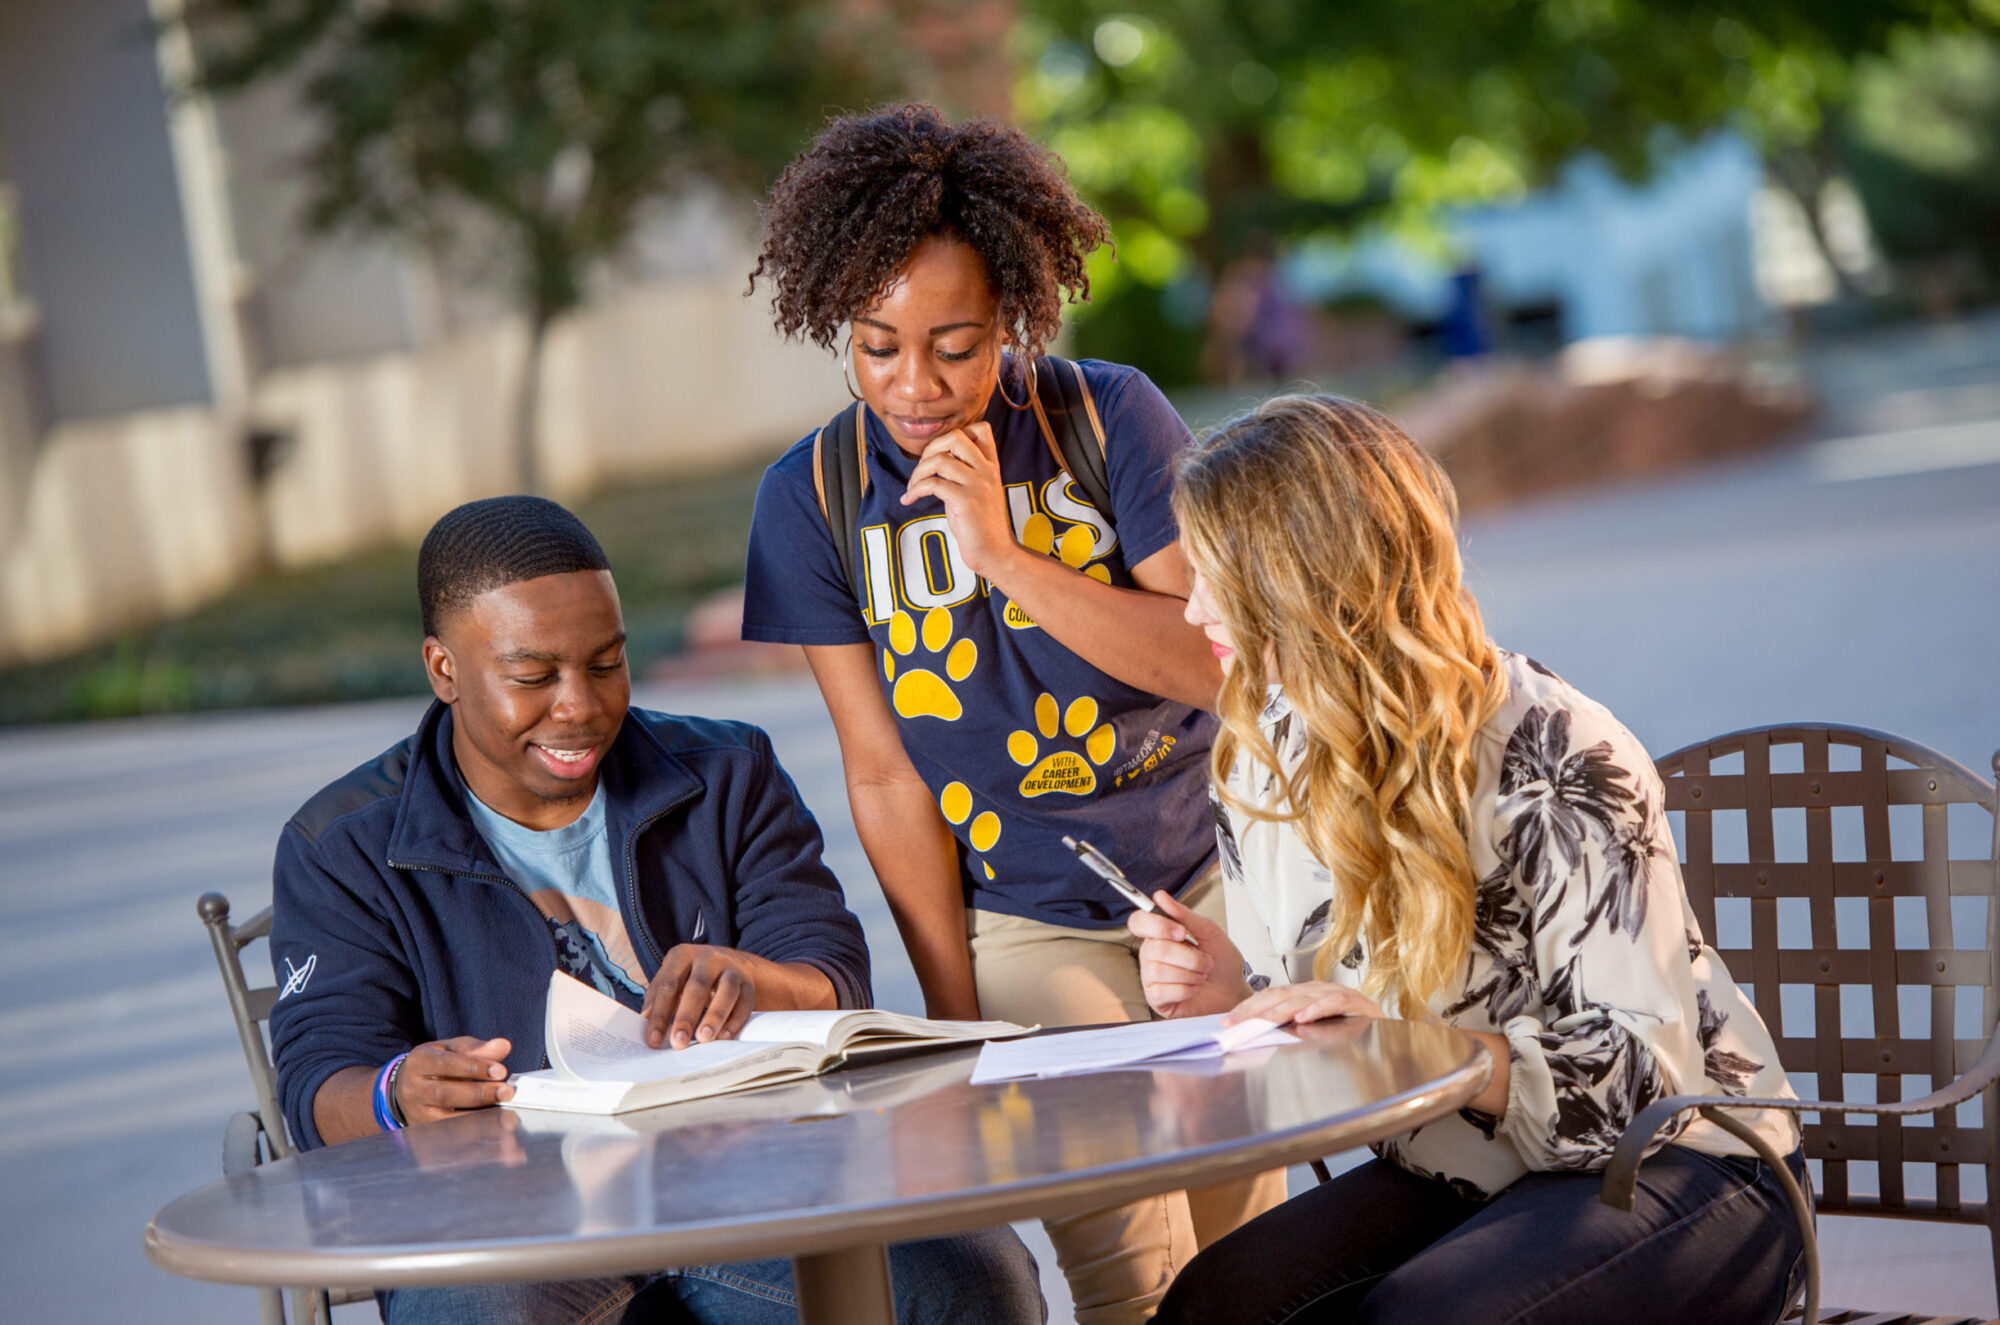 Group of students studying at a table.